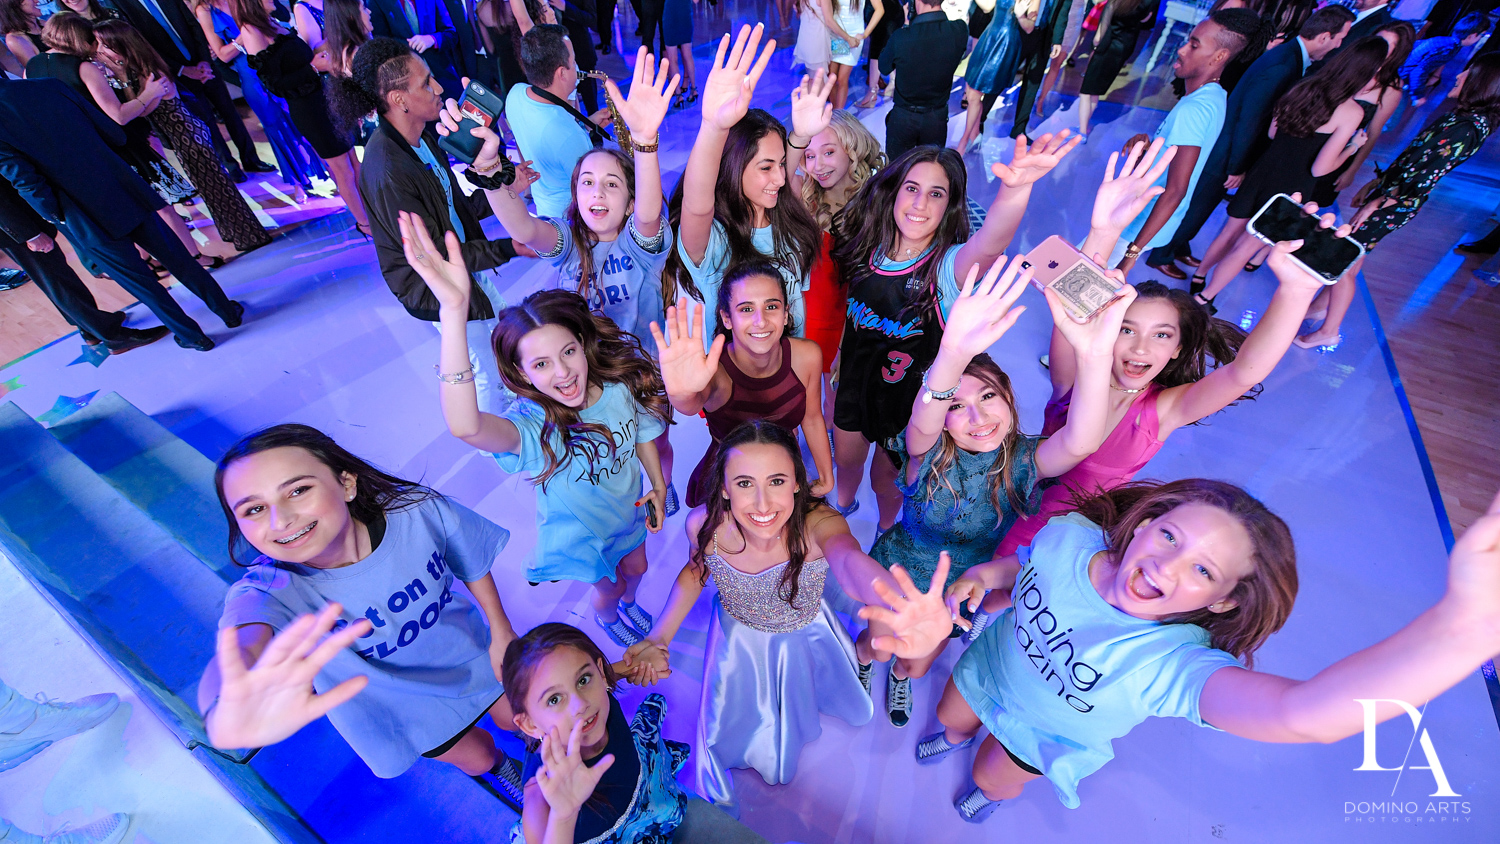 fun party pictures at Gymnastics Theme Bat Mitzvah at Xtreme Action Park by Domino Arts